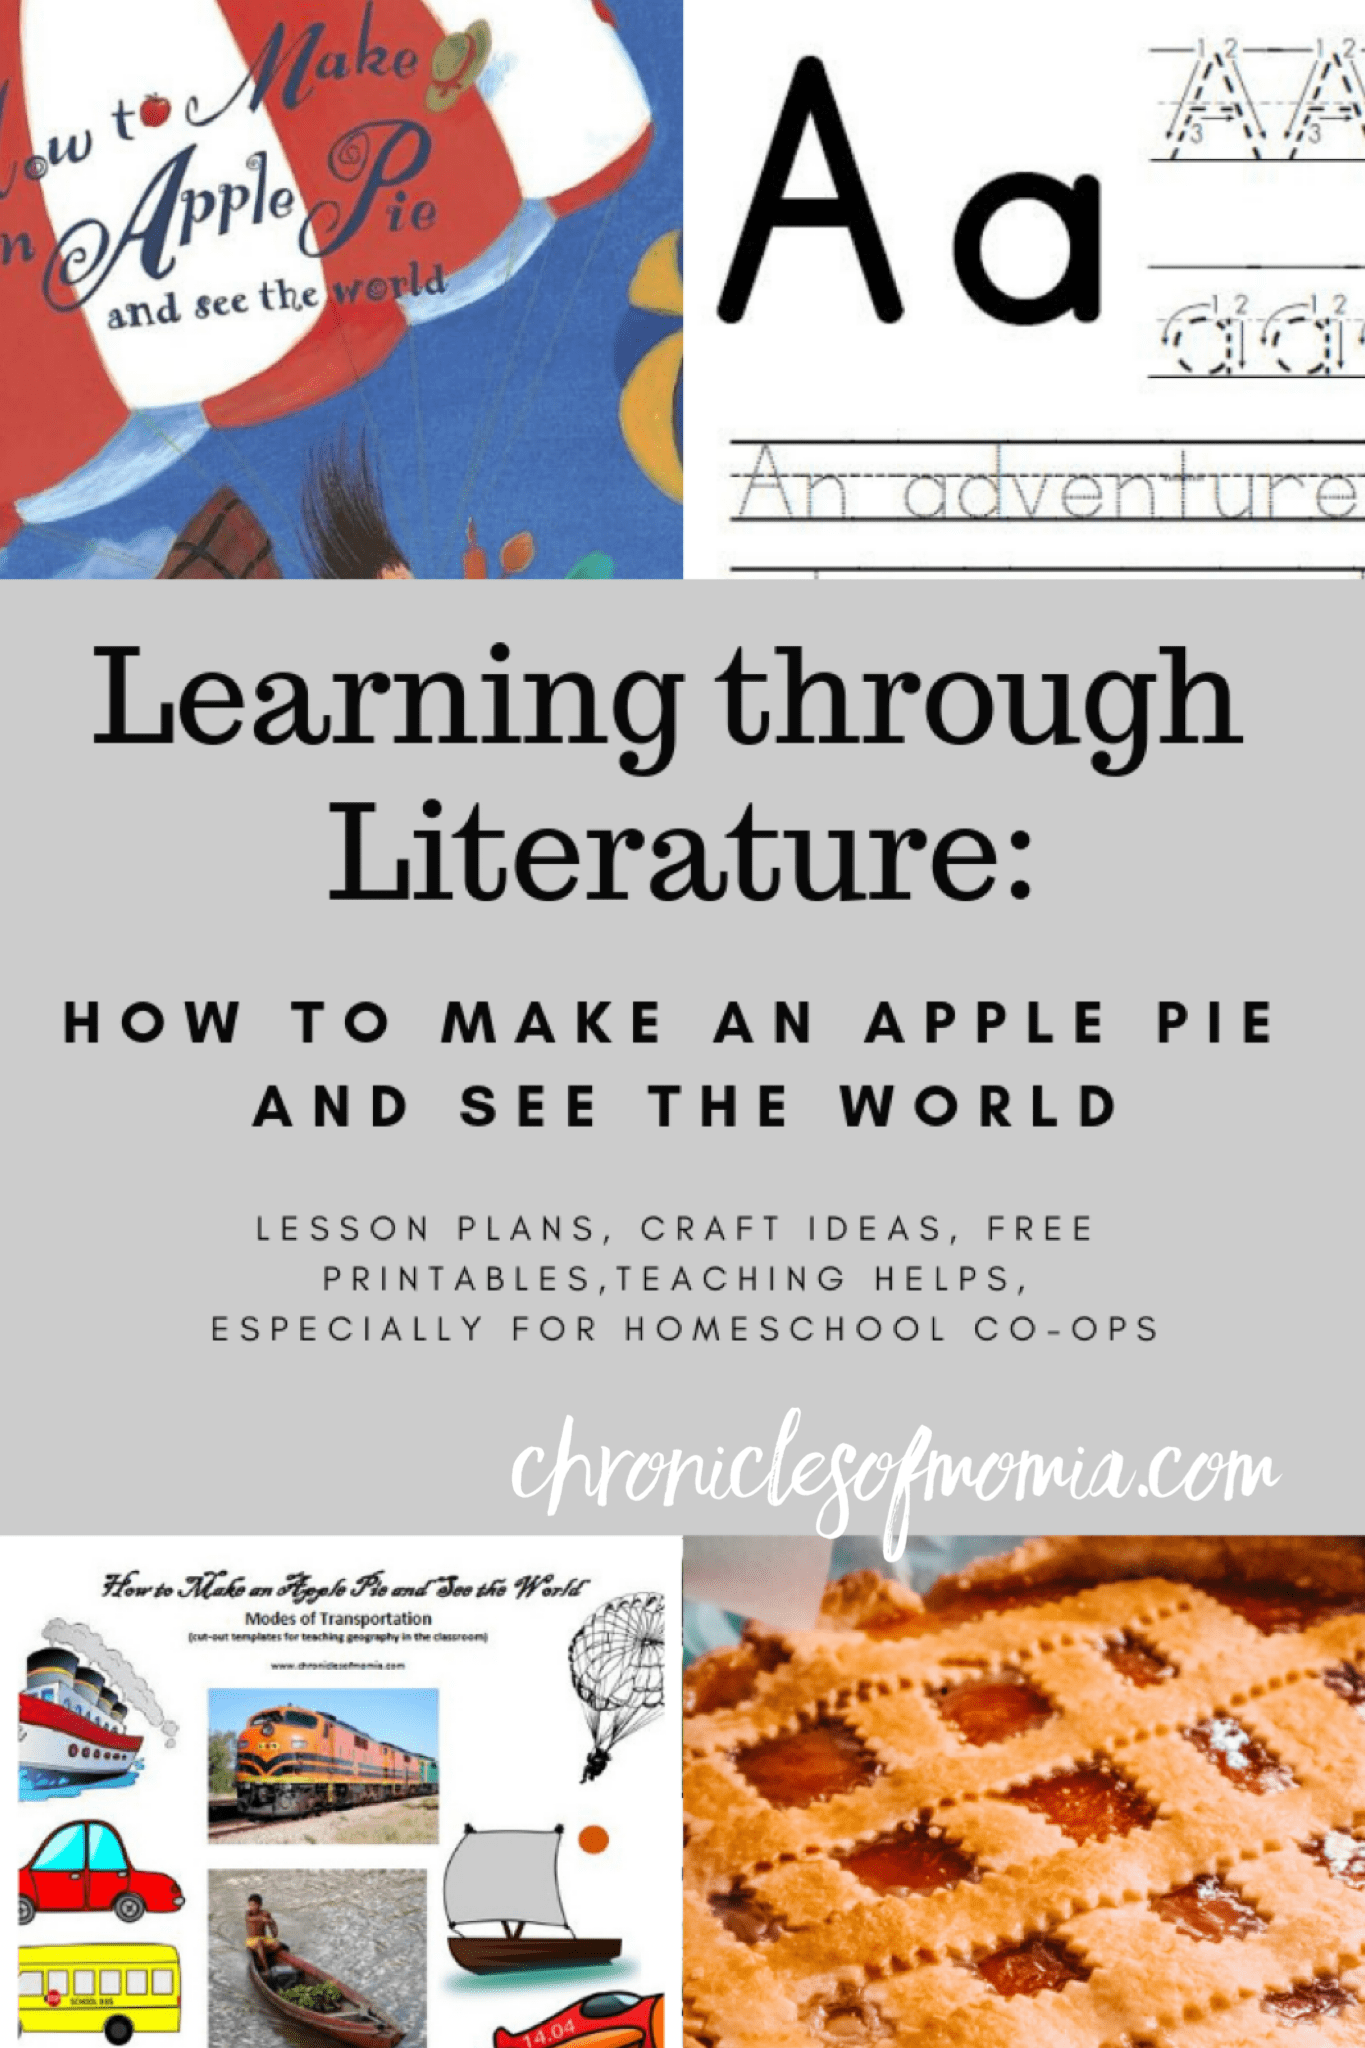 A How To Make An Apple Pie And See The World